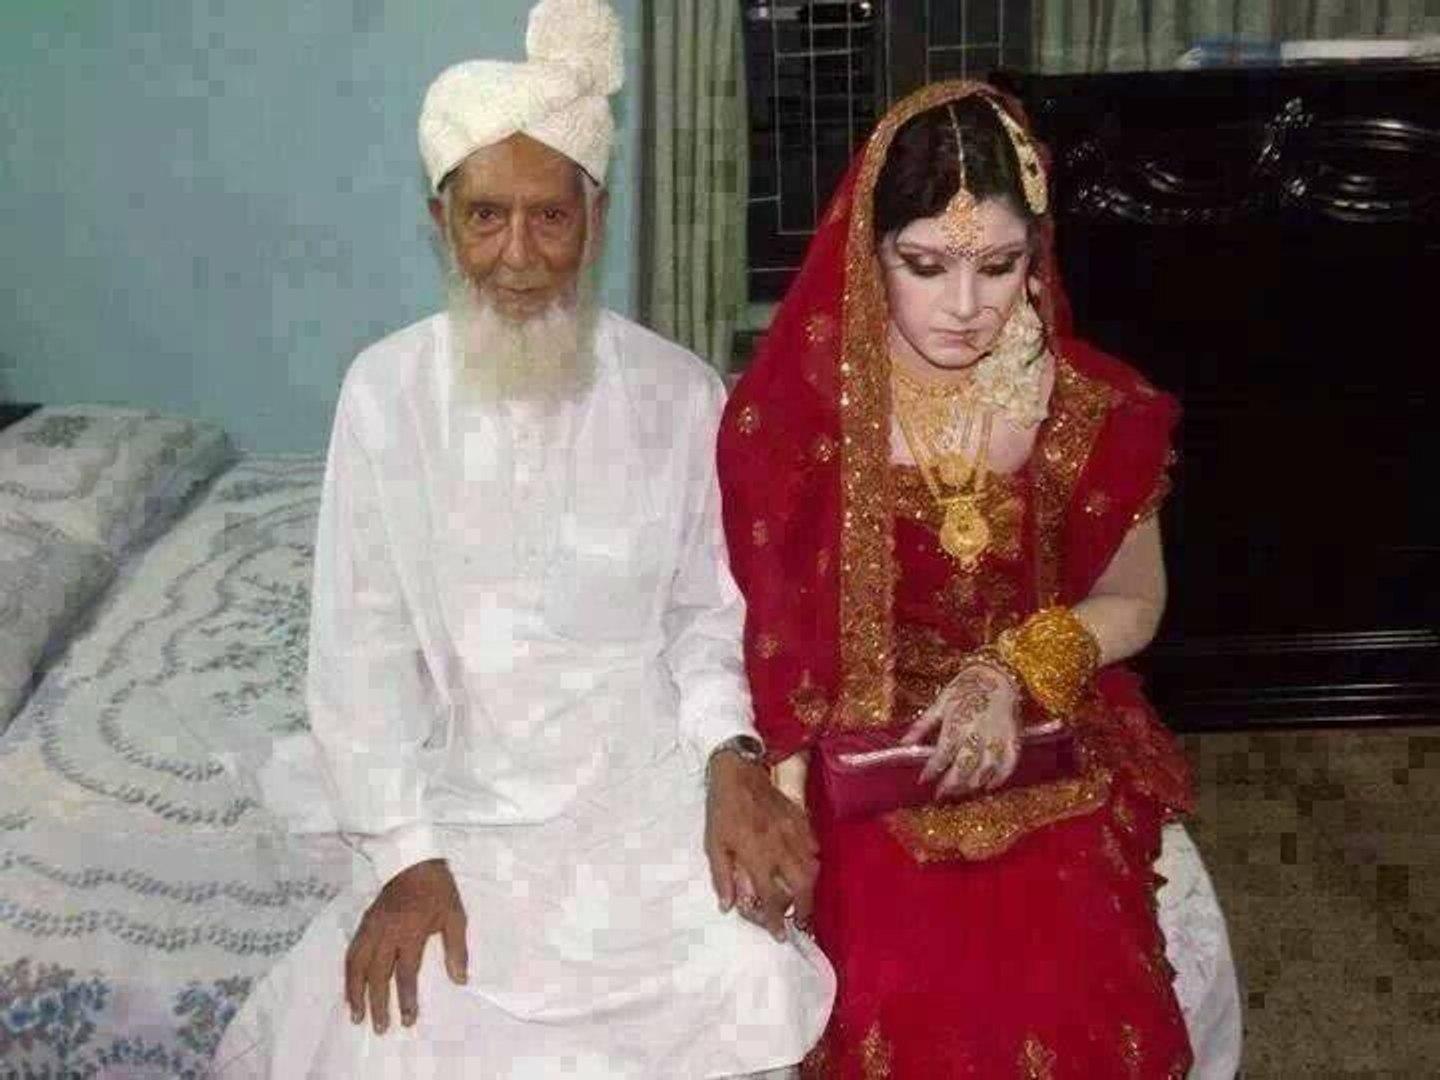 A 20-year-old young girl marrying a 75-year-old man  In many countries like  Saudi Arabia and Iran young Muslim women from poor families are brought for